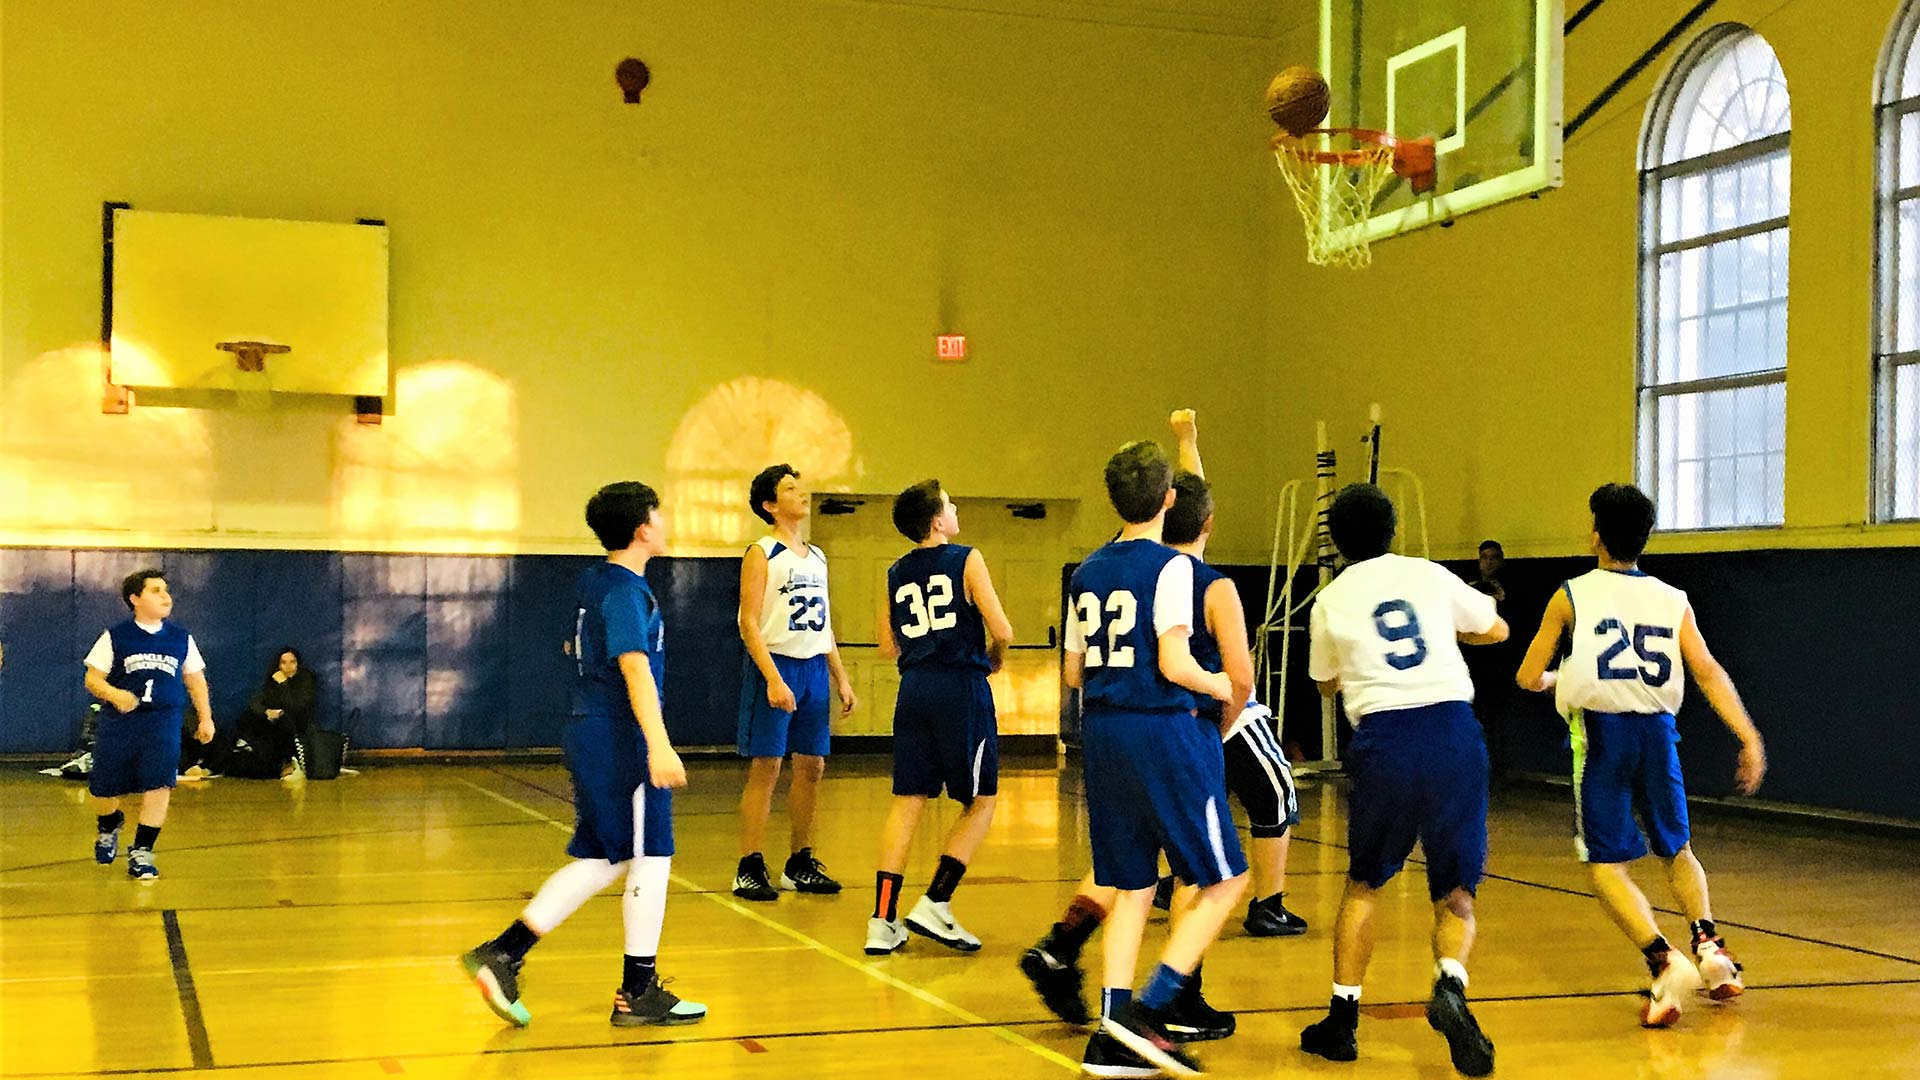 The Lewis School Lions basketball team playing 2018-2019